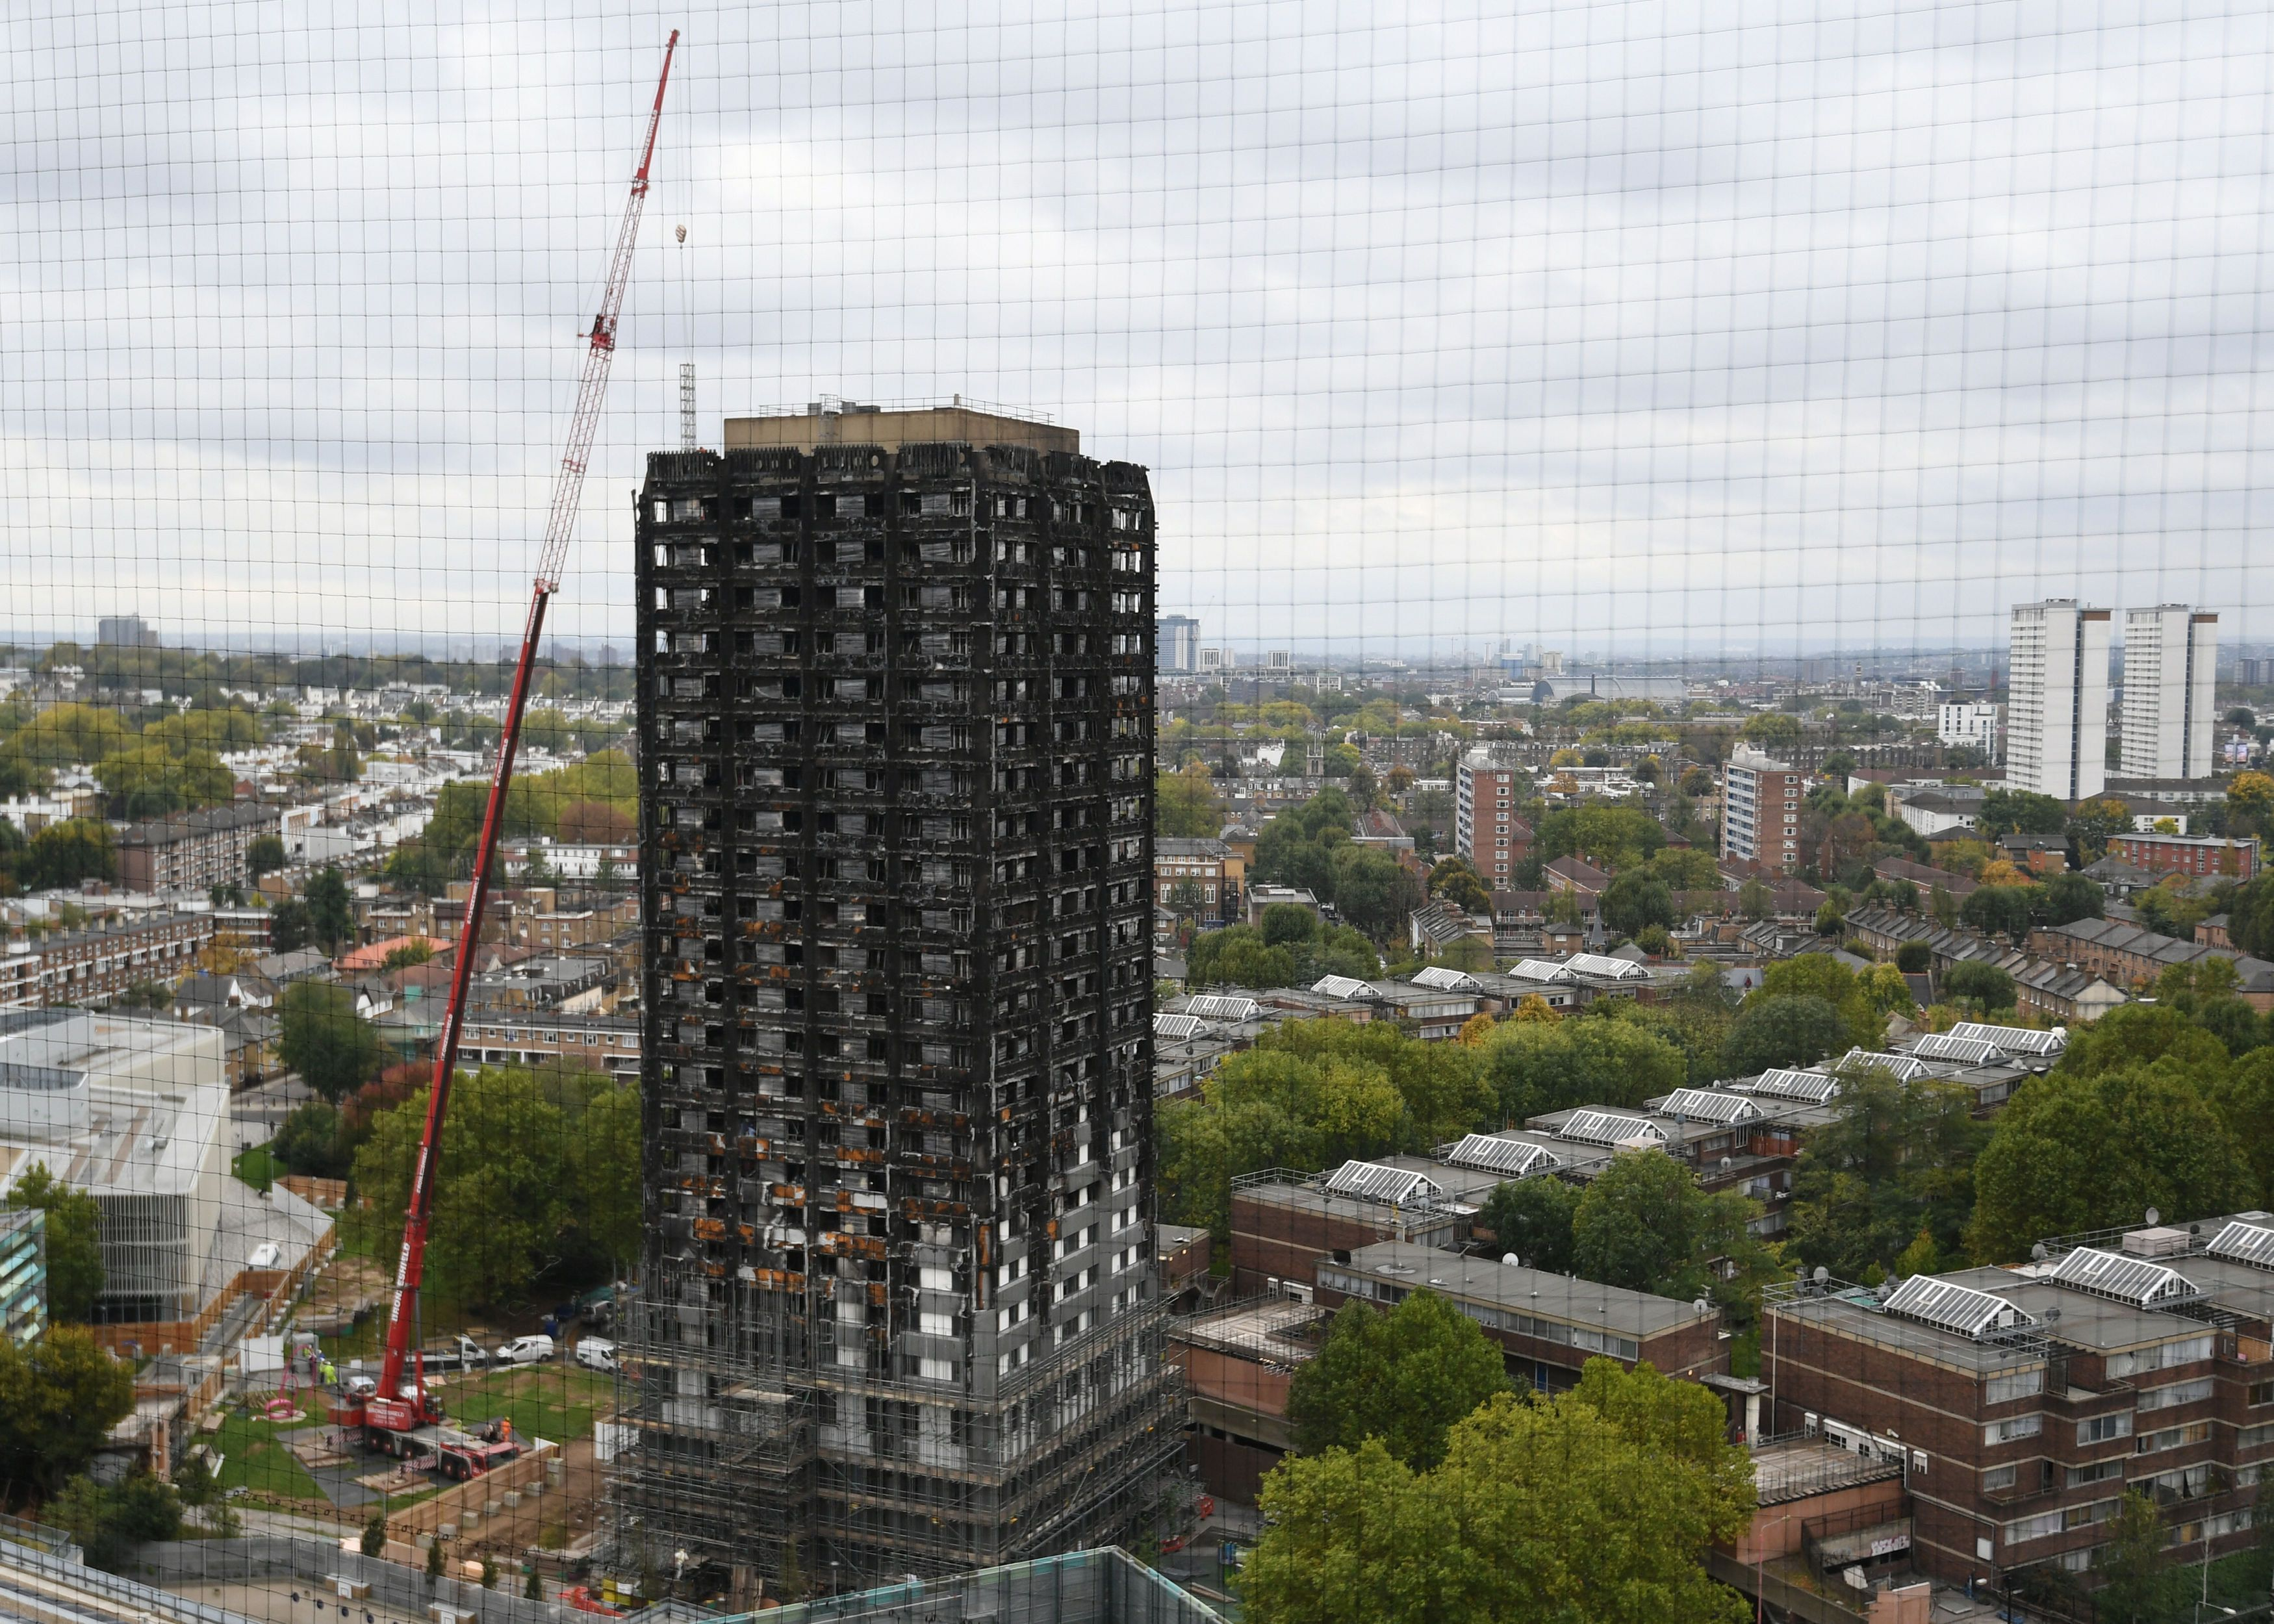 4,000 Fire Doors To Be Removed In Grenfell Borough - But It's Not Even The 'Tip Of The Iceberg'